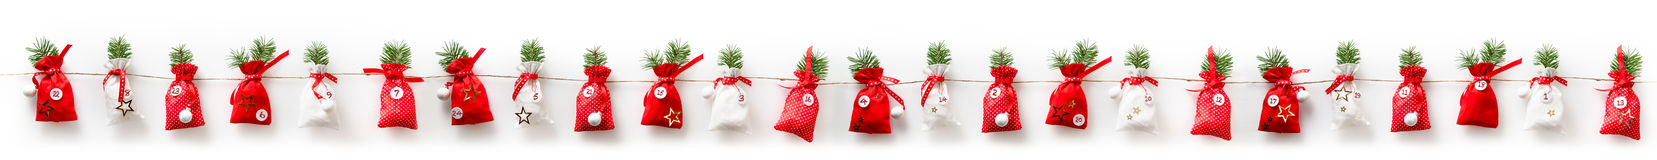 Xmas Advent calendar stuffed 24 sachets in a row. Hanging on a rope isolate on white background for christmas season stock image